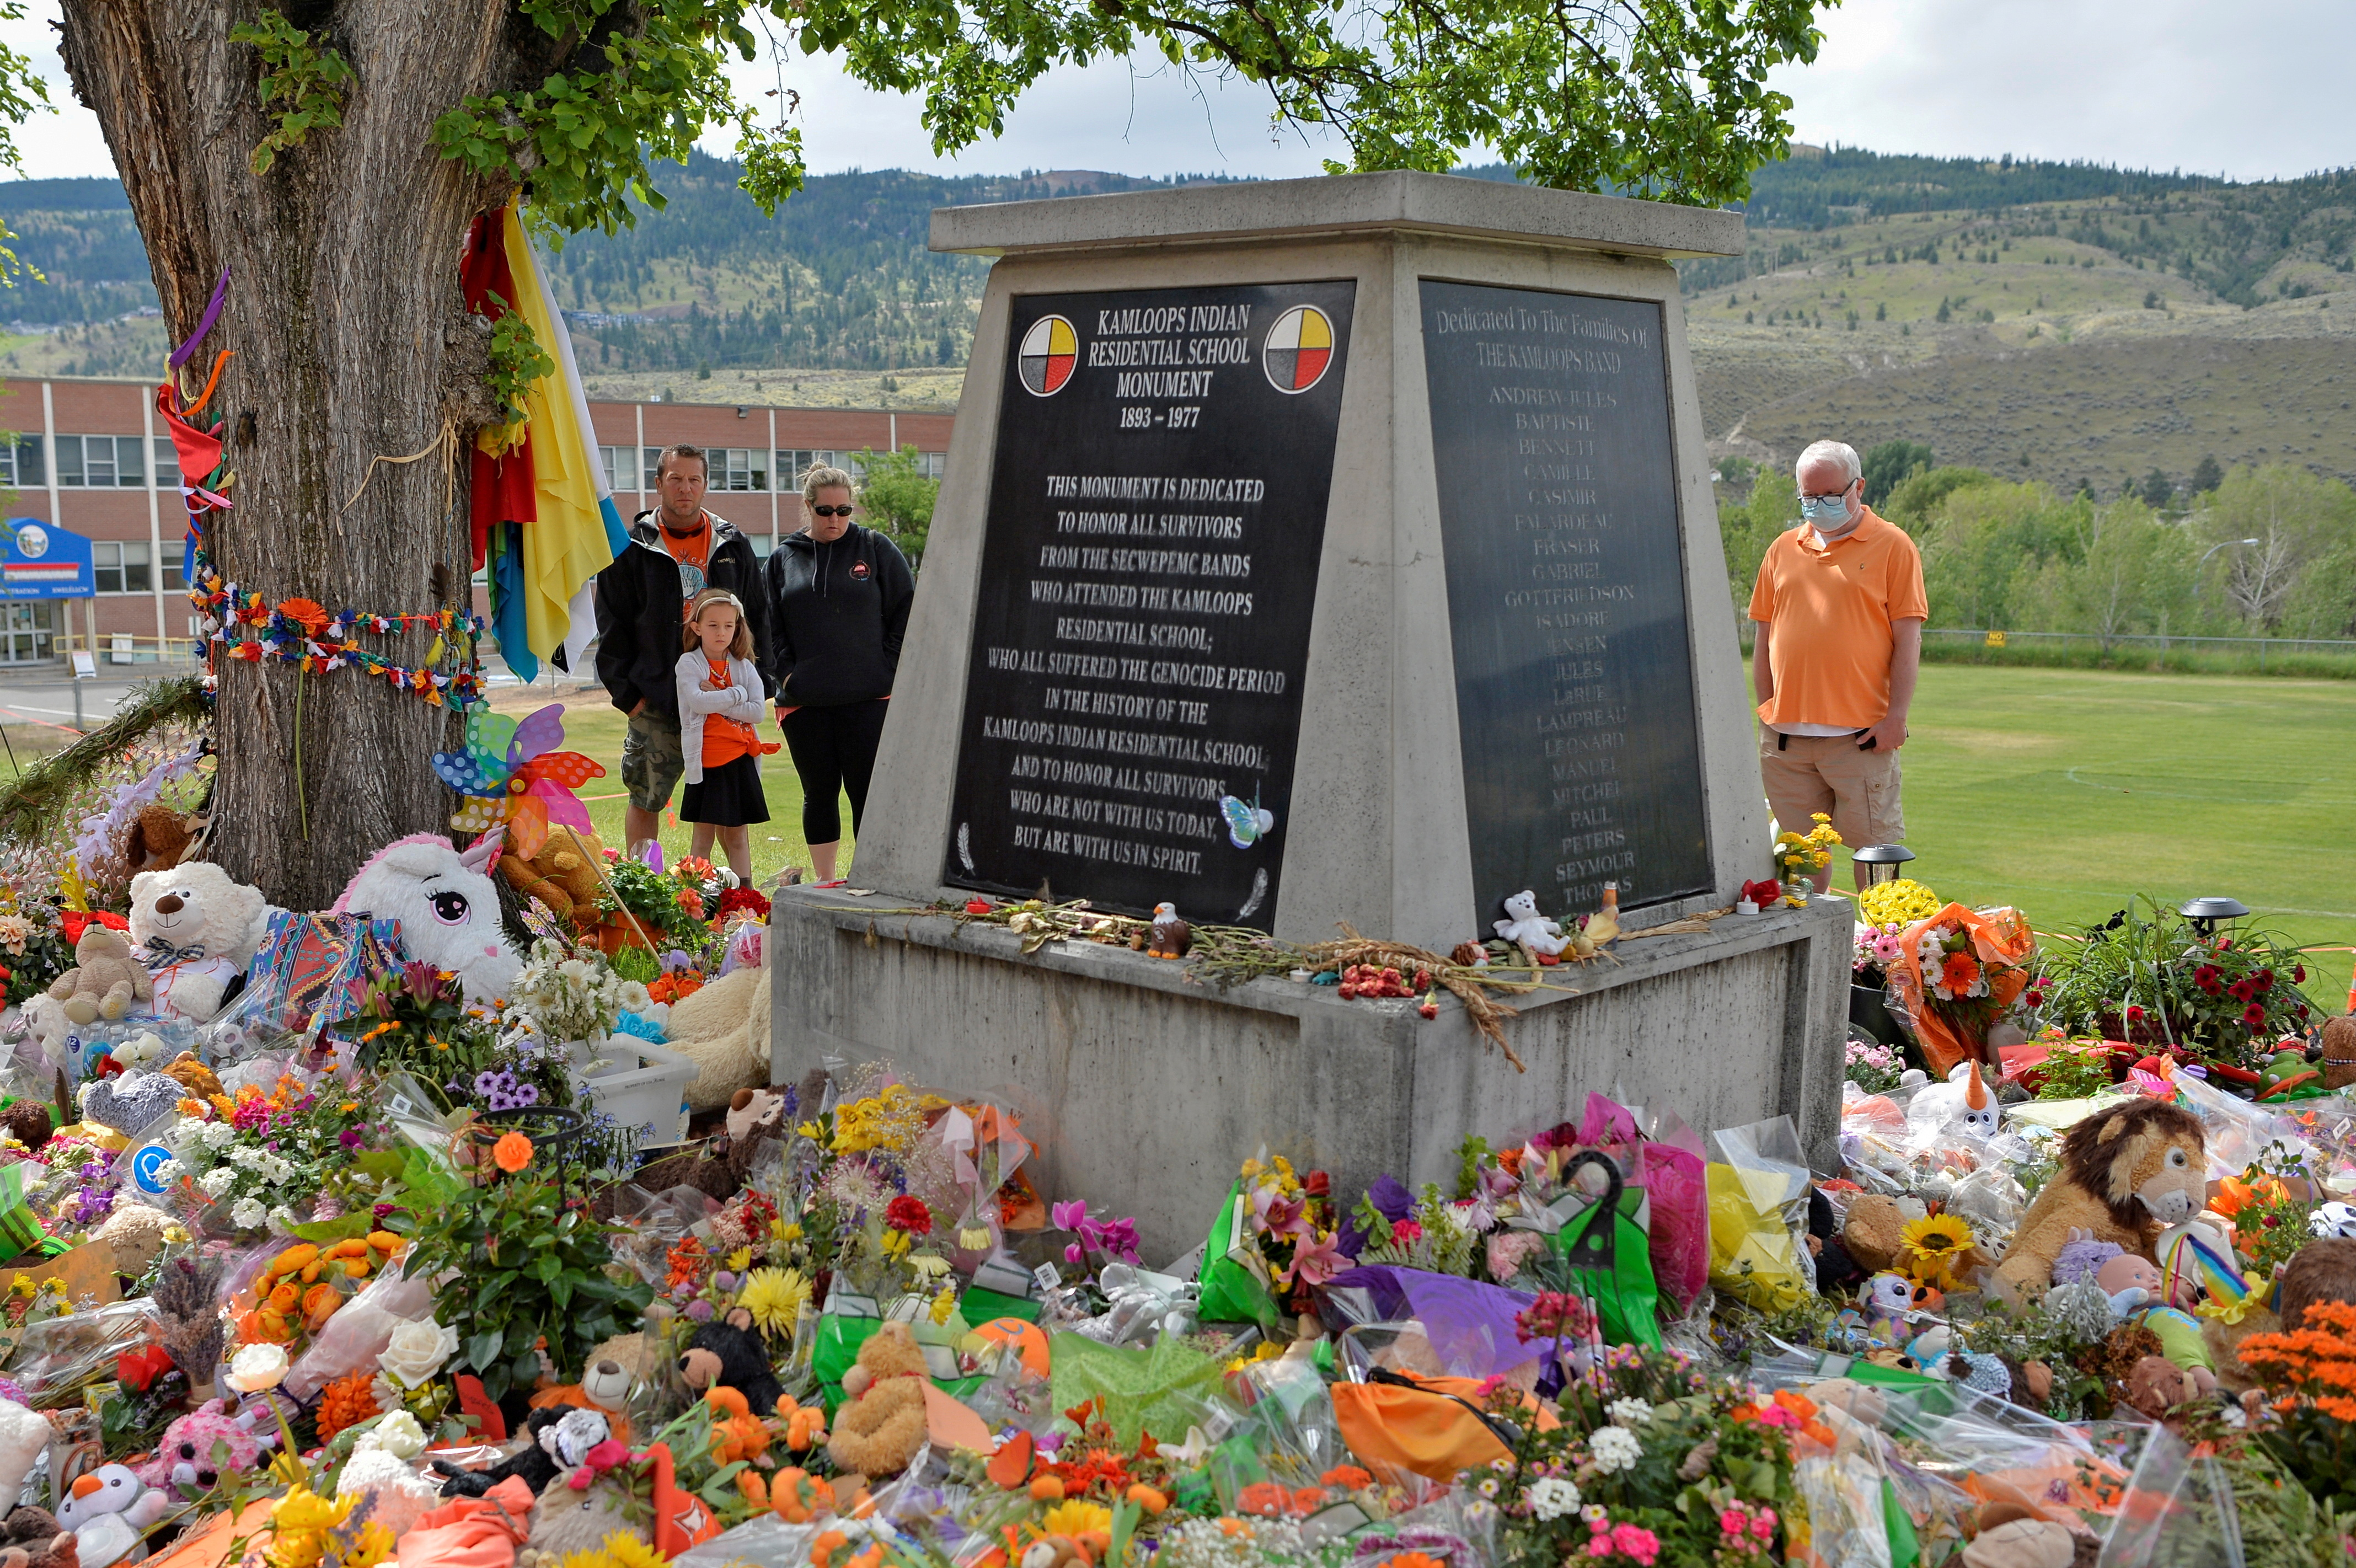 People visit a makeshift memorial on the grounds of the former Kamloops Indian Residential School, after the Tk'emlups te Secwepemc band council encouraged mourners to take part in a national day of prayer to honor the remains of 215 children that were found at the site in Kamloops, British Columbia, Canada June 6, 2021.  REUTERS/Jennifer Gauthier/File Photo